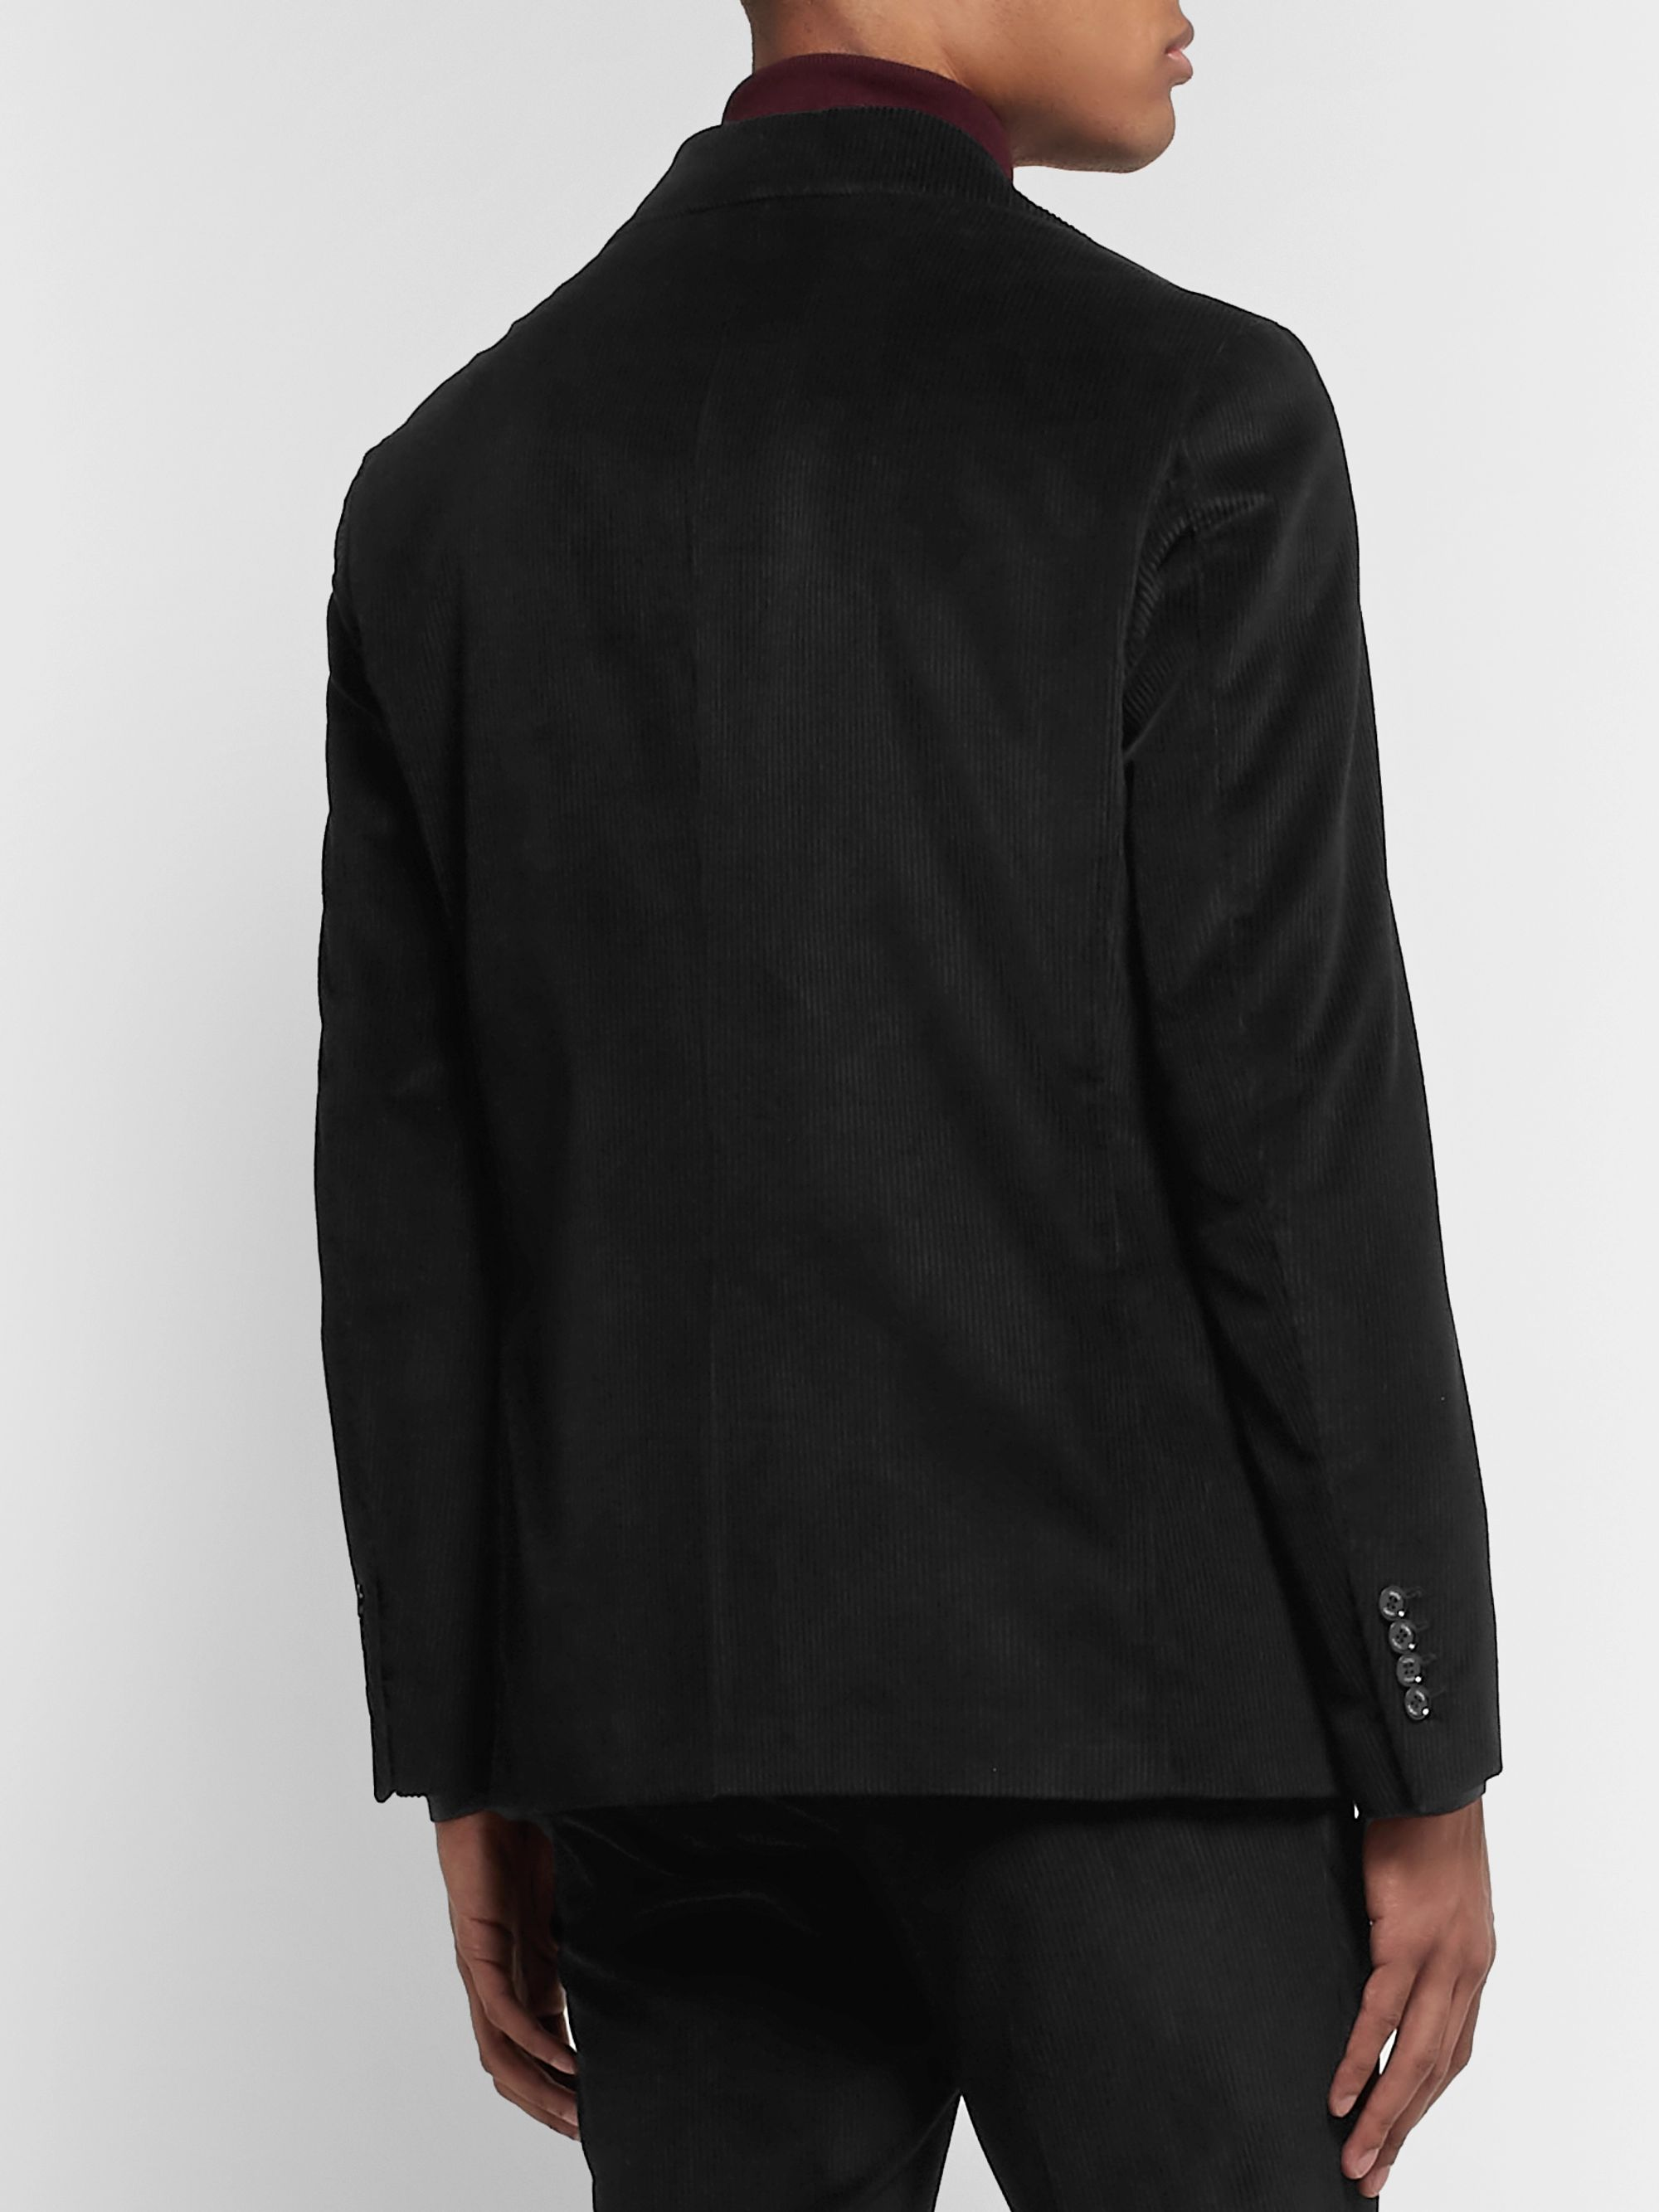 Tod's Black Cotton-Velvet Suit Jacket